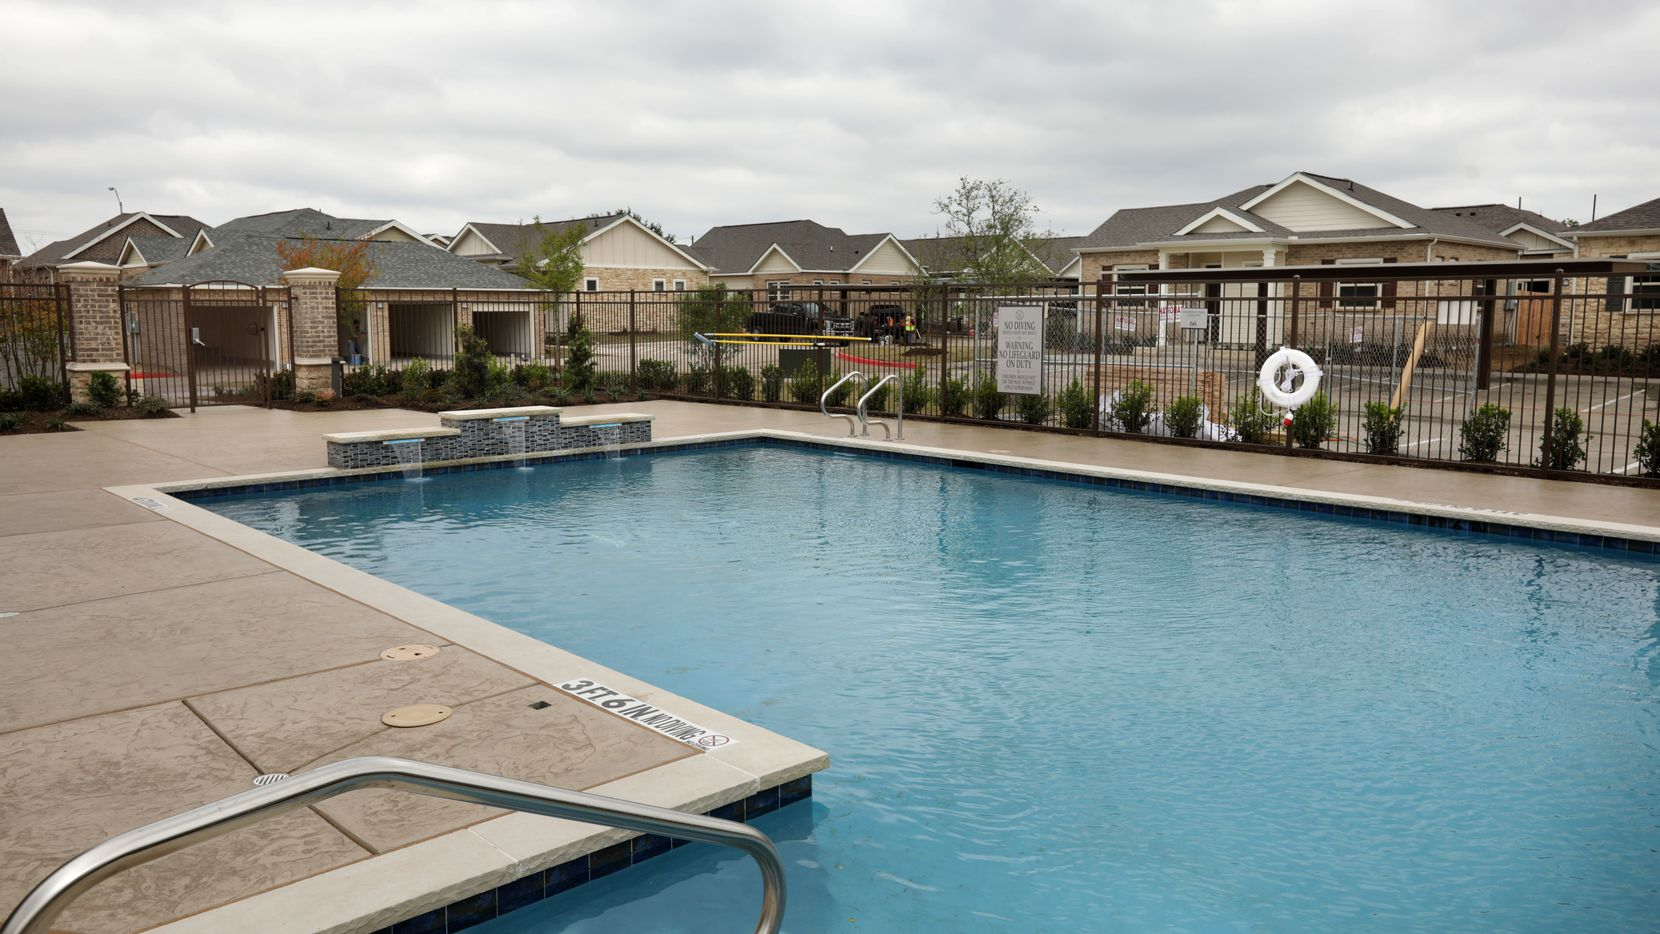 The community pool at the Avilla Premier home community in McKinney, which opened in 2018.